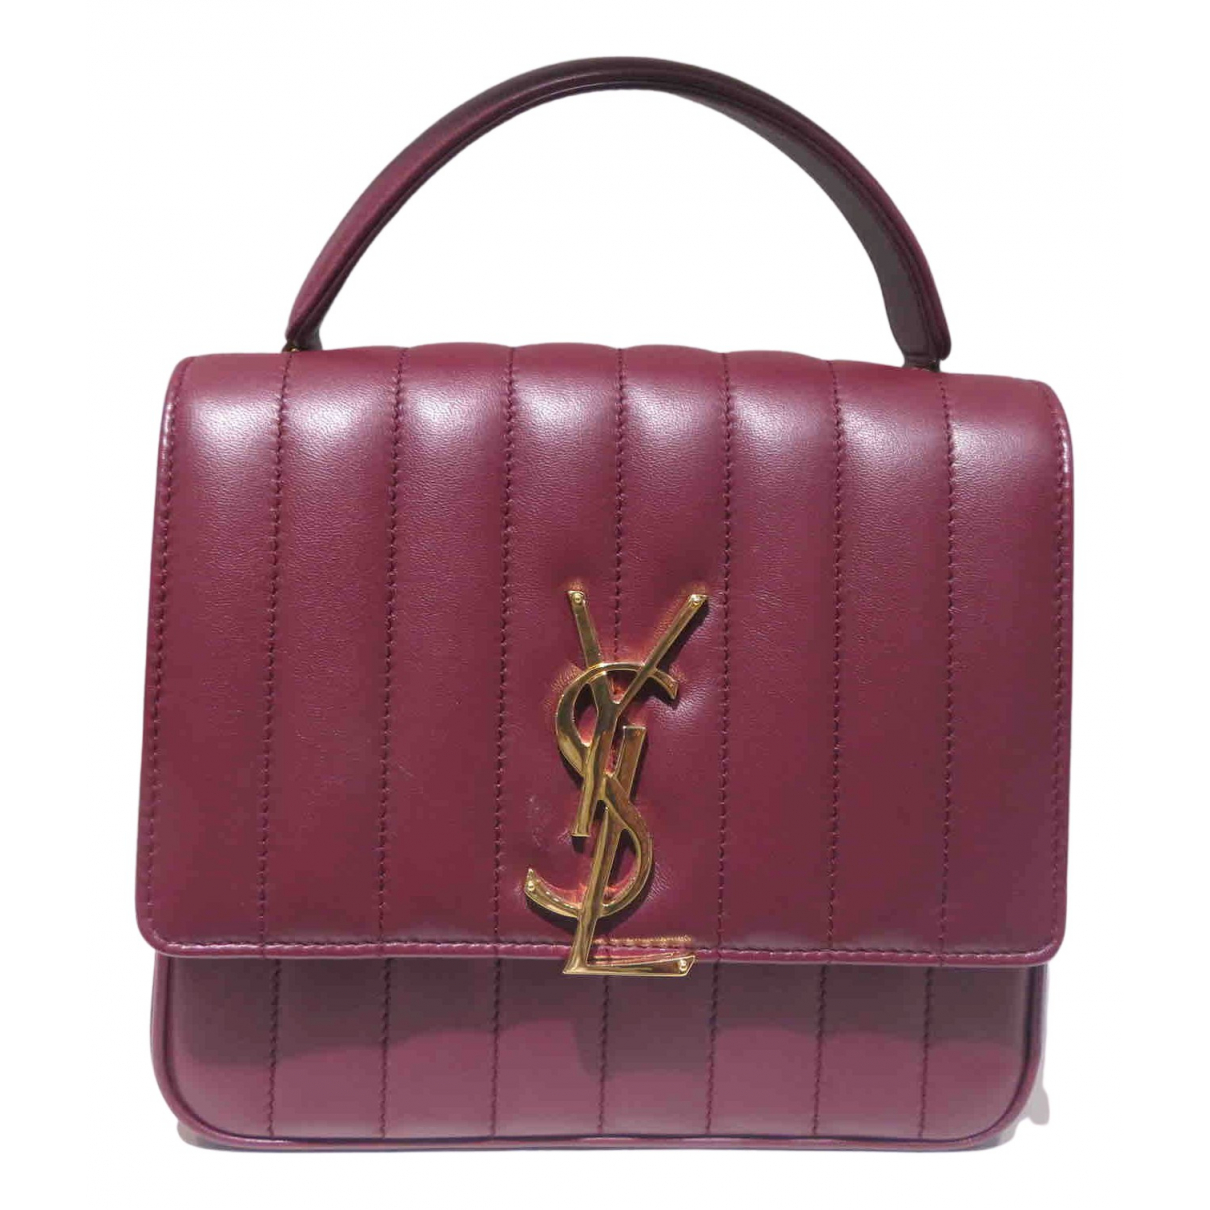 Yves Saint Laurent N Burgundy Leather handbag for Women N